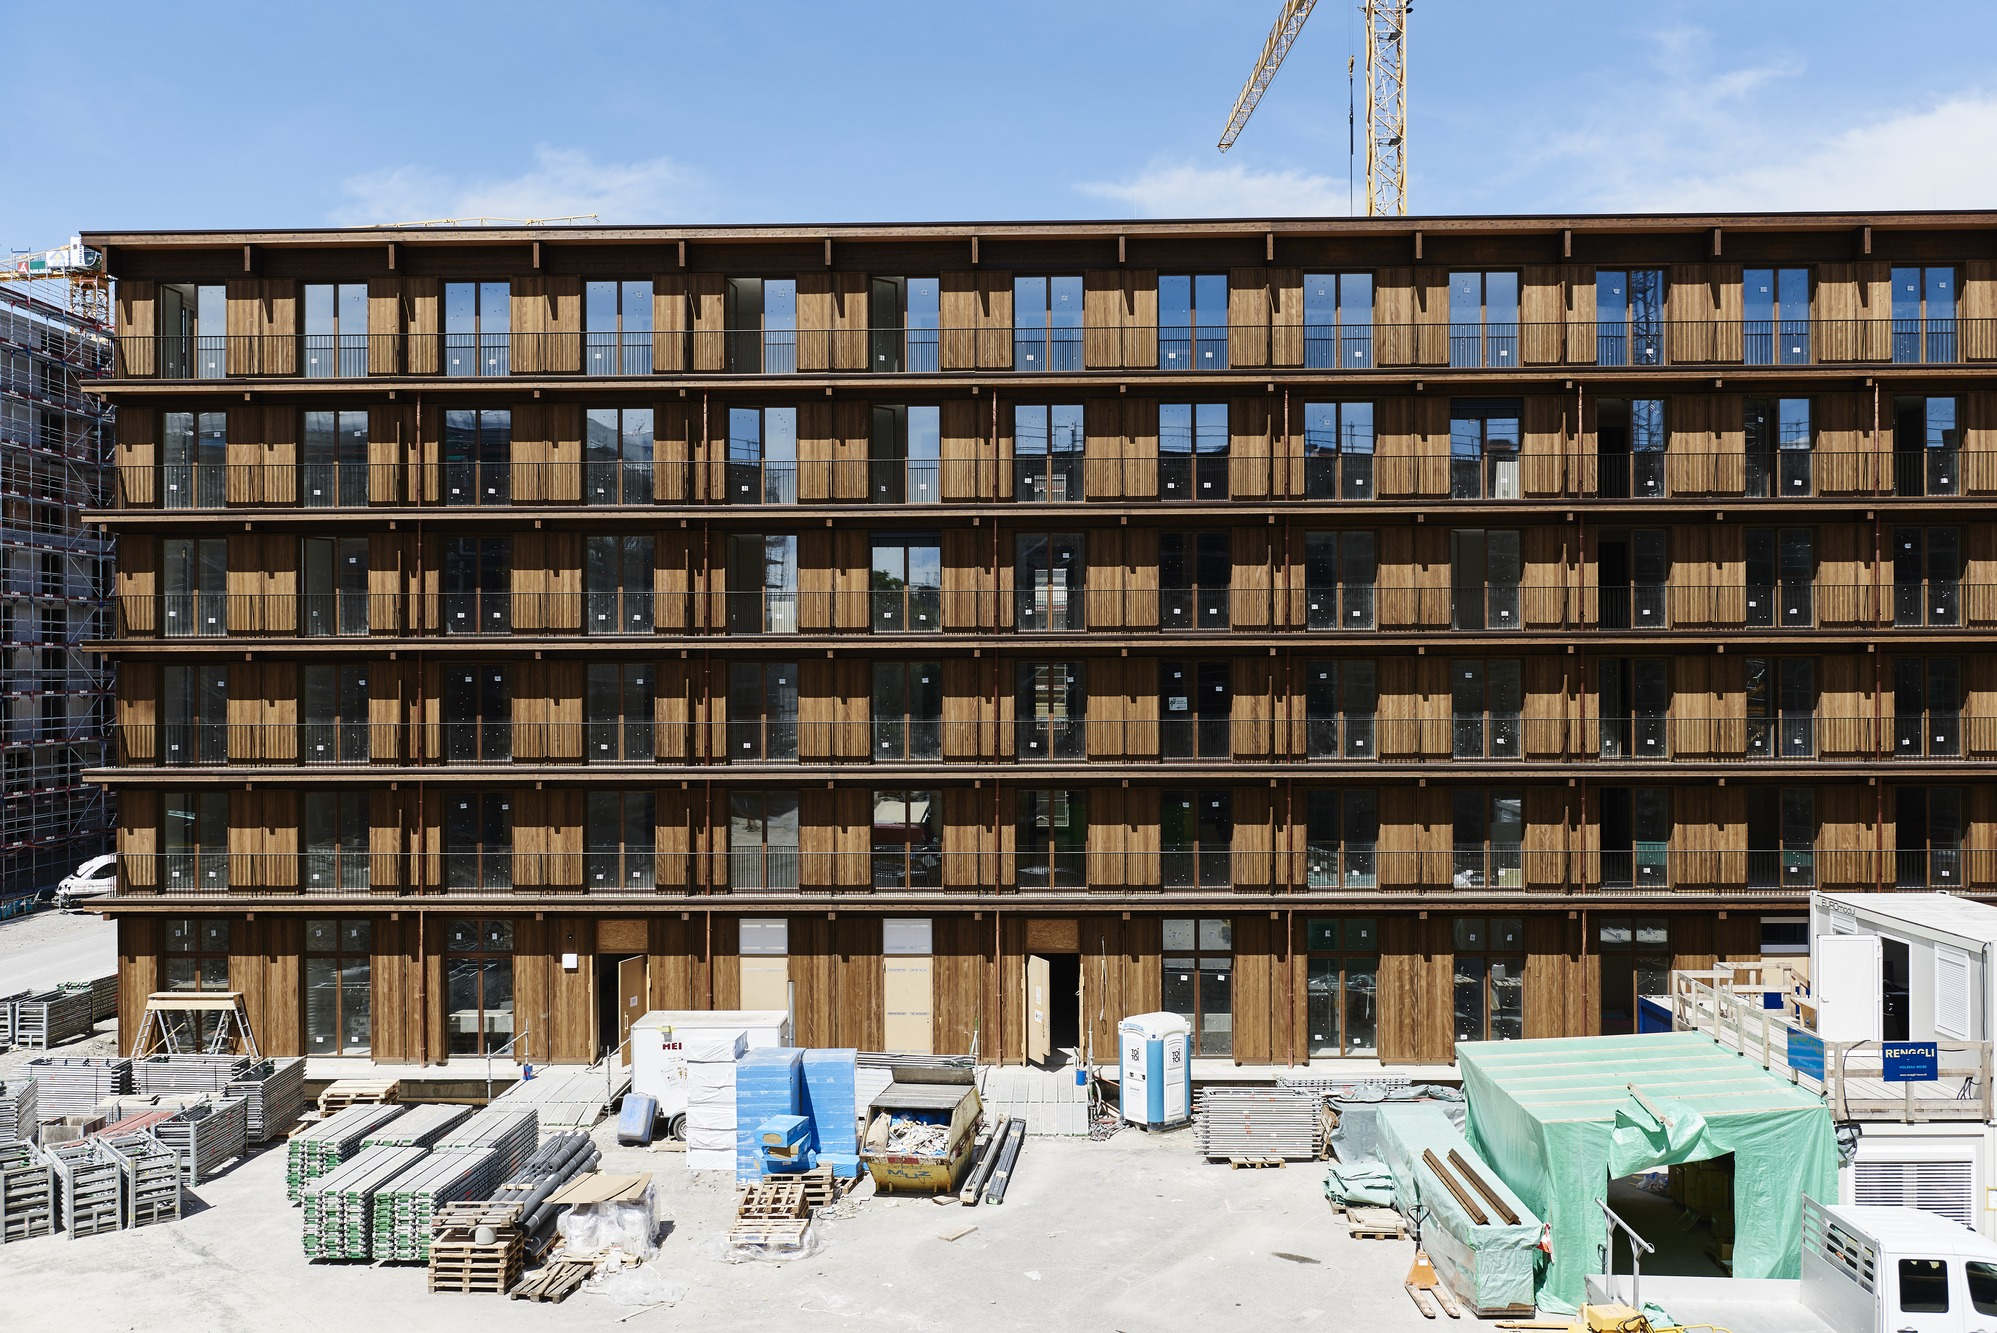 Our assembly team erected the three long six-story buildings at Freilager Zurich in one year and one day.